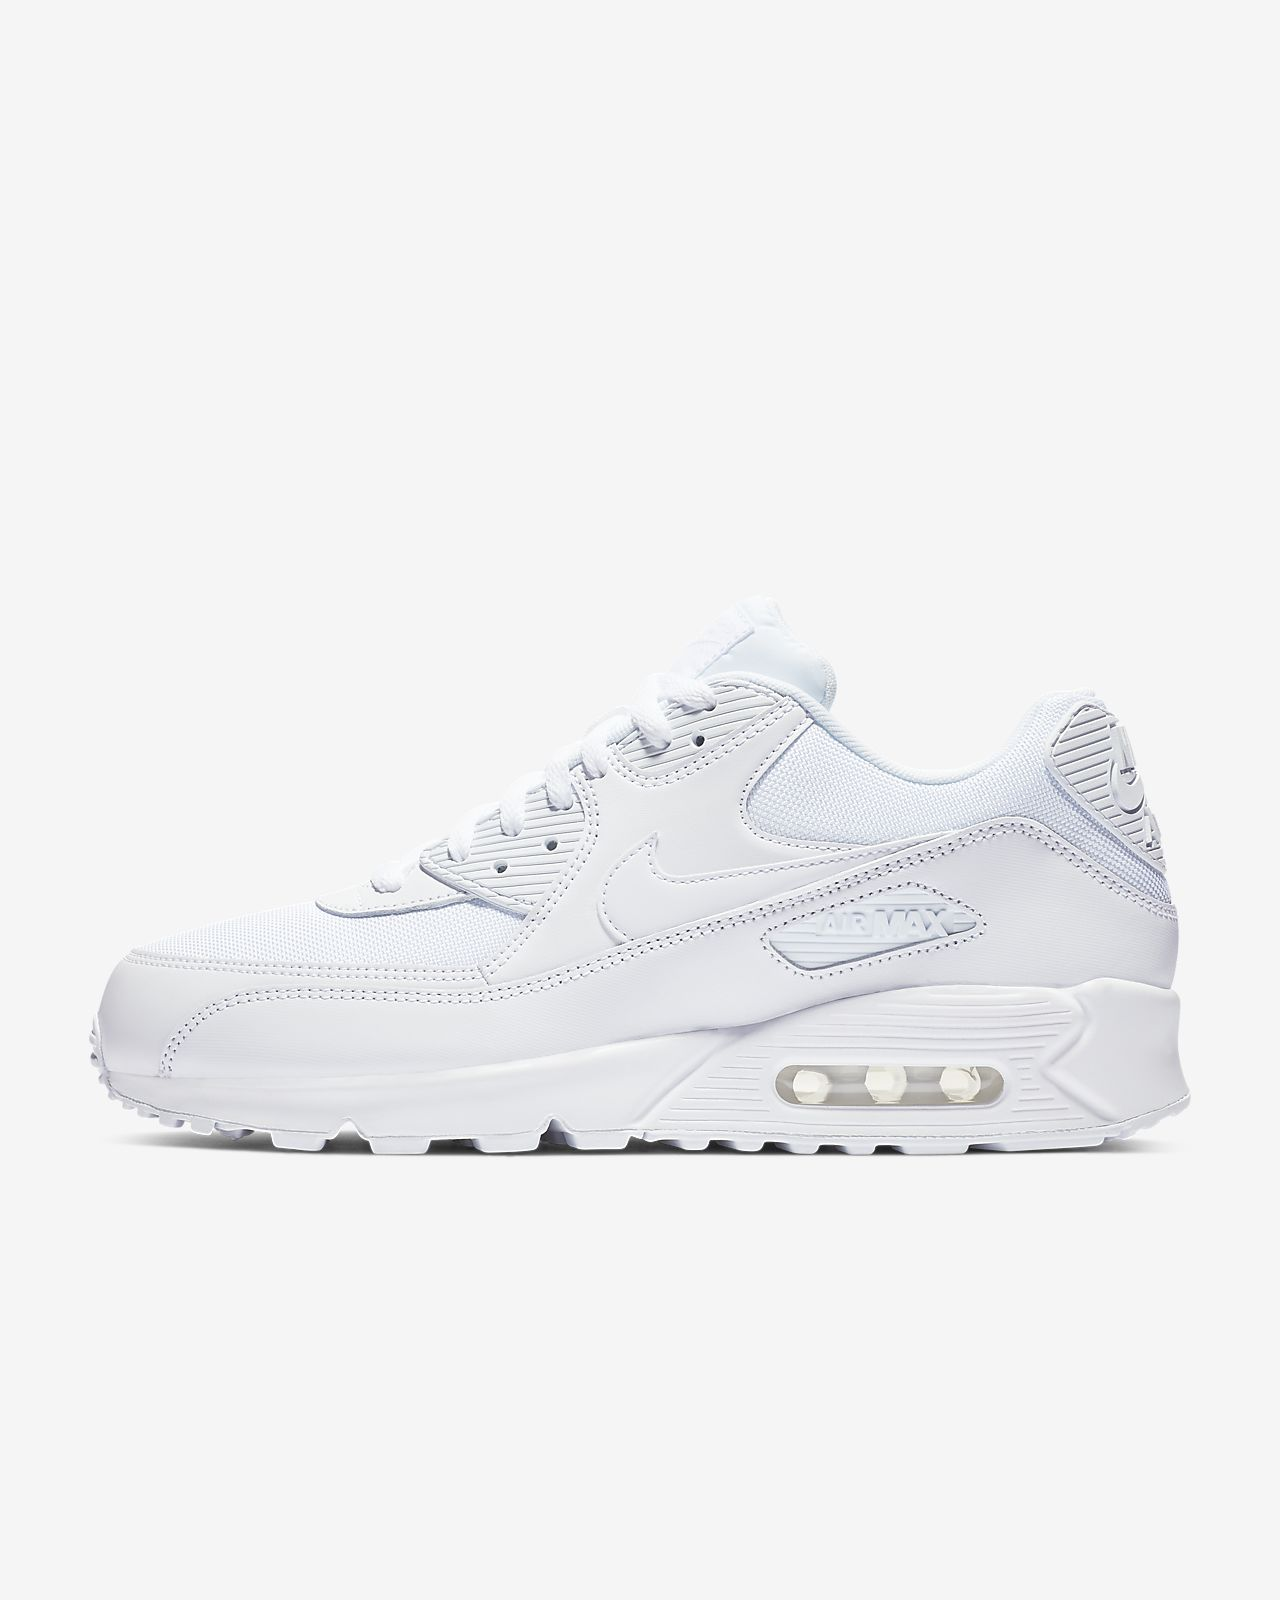 san francisco 8efa8 21a4e Nike Air Max 90 Essential herresko